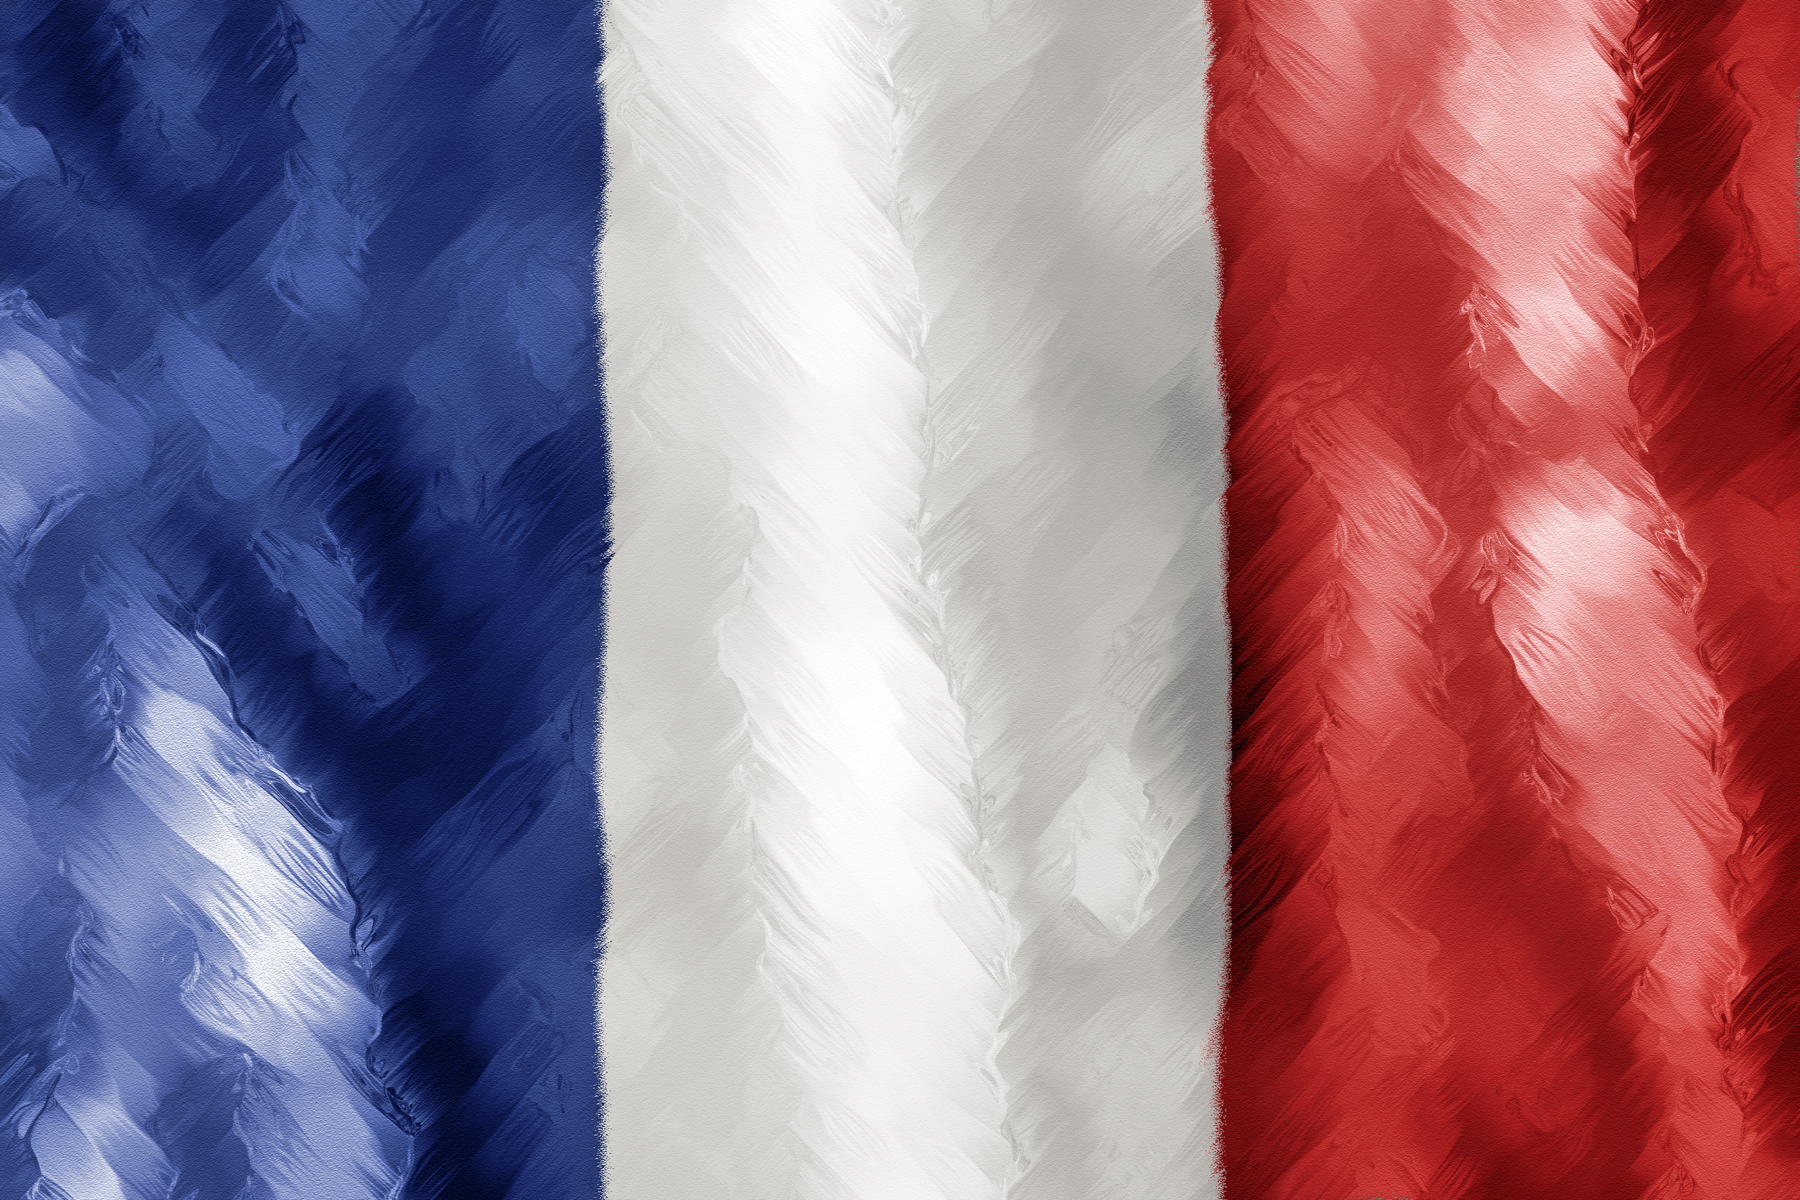 Abstract Paint Stroked Flag - France, Abstract, Smear, Nation, National, HQ Photo